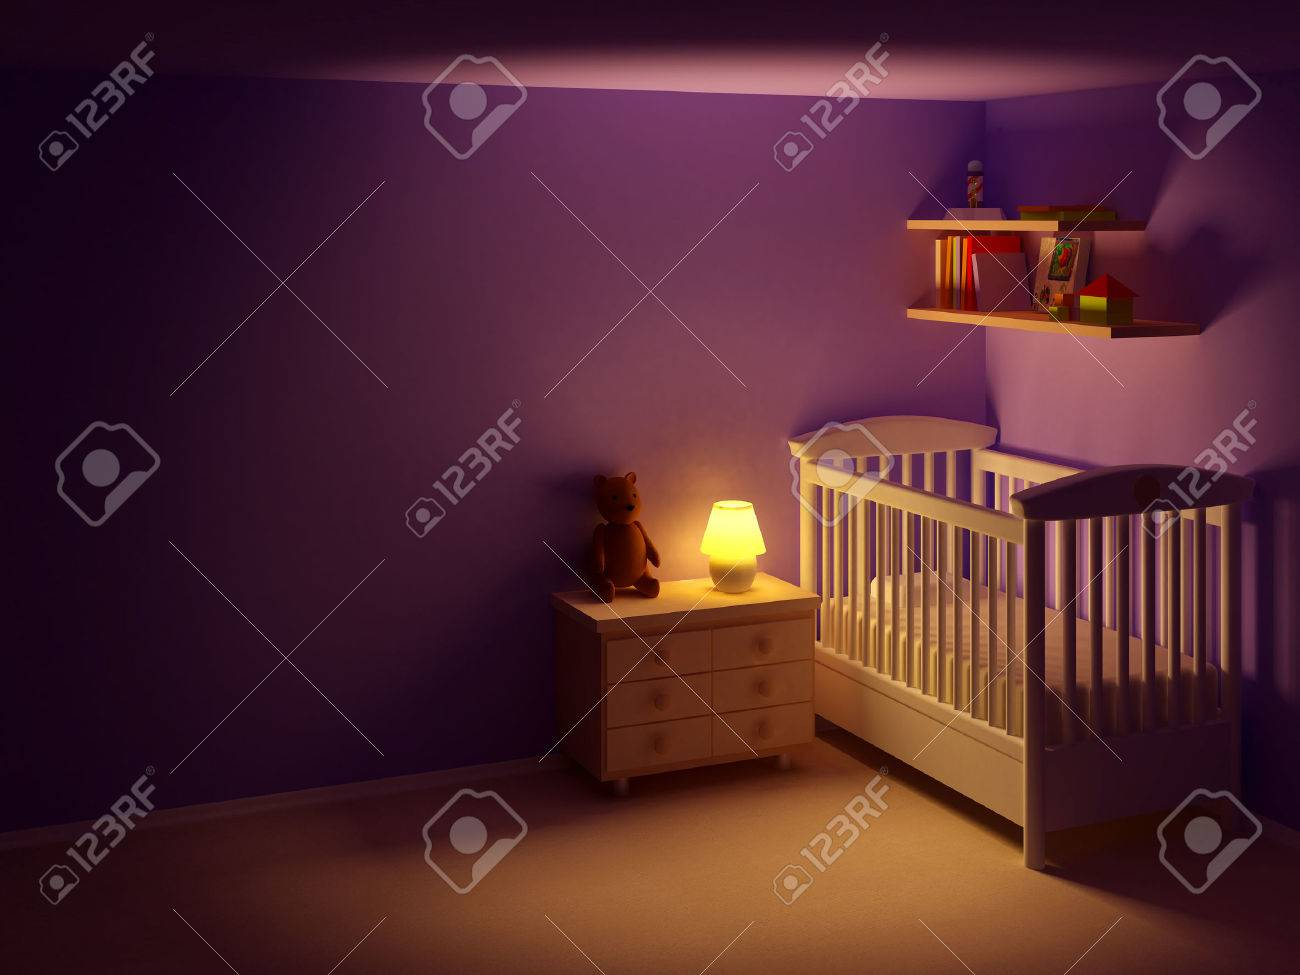 Babys Bedroom With Commode And Bear At Night Empty Room Scene Stock Photo